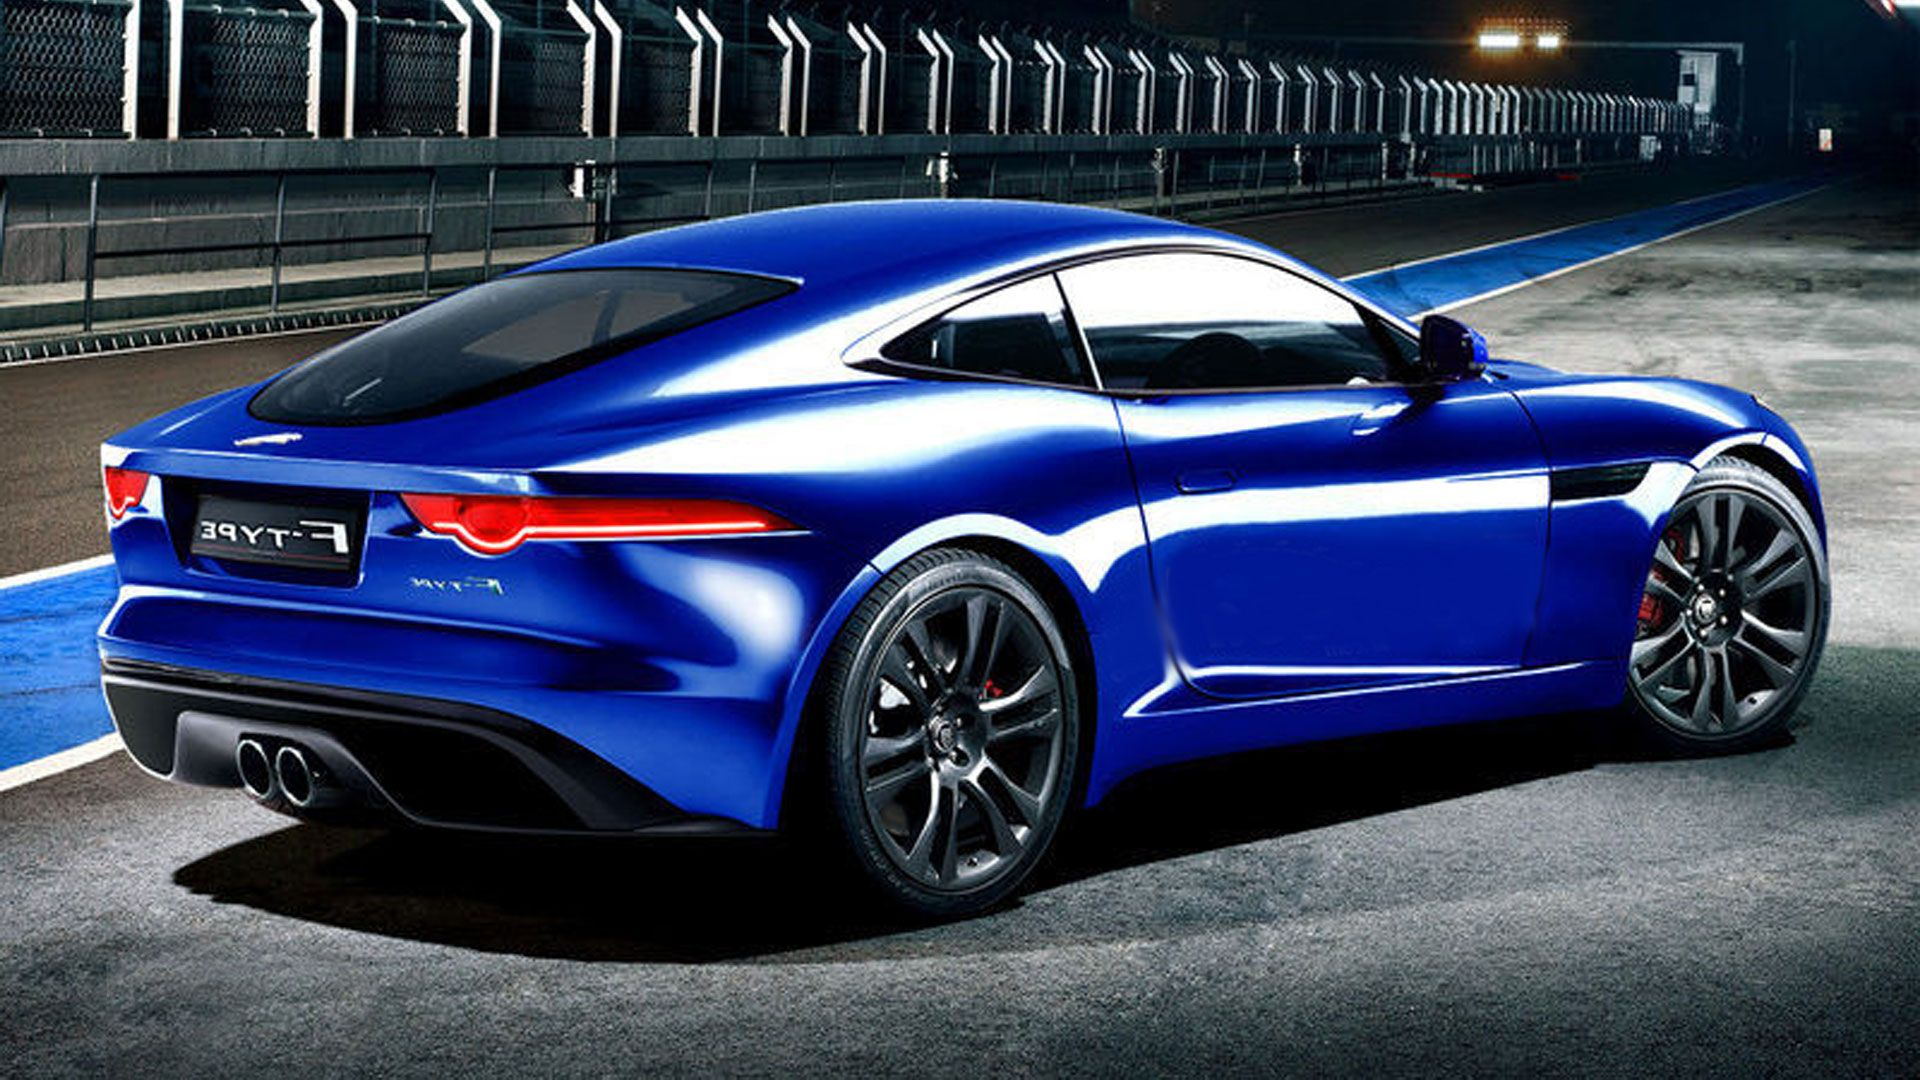 2014 Jaguar F Type Redesign 2014 Jaguar F Type Coupe U2013 Top Car Magazine